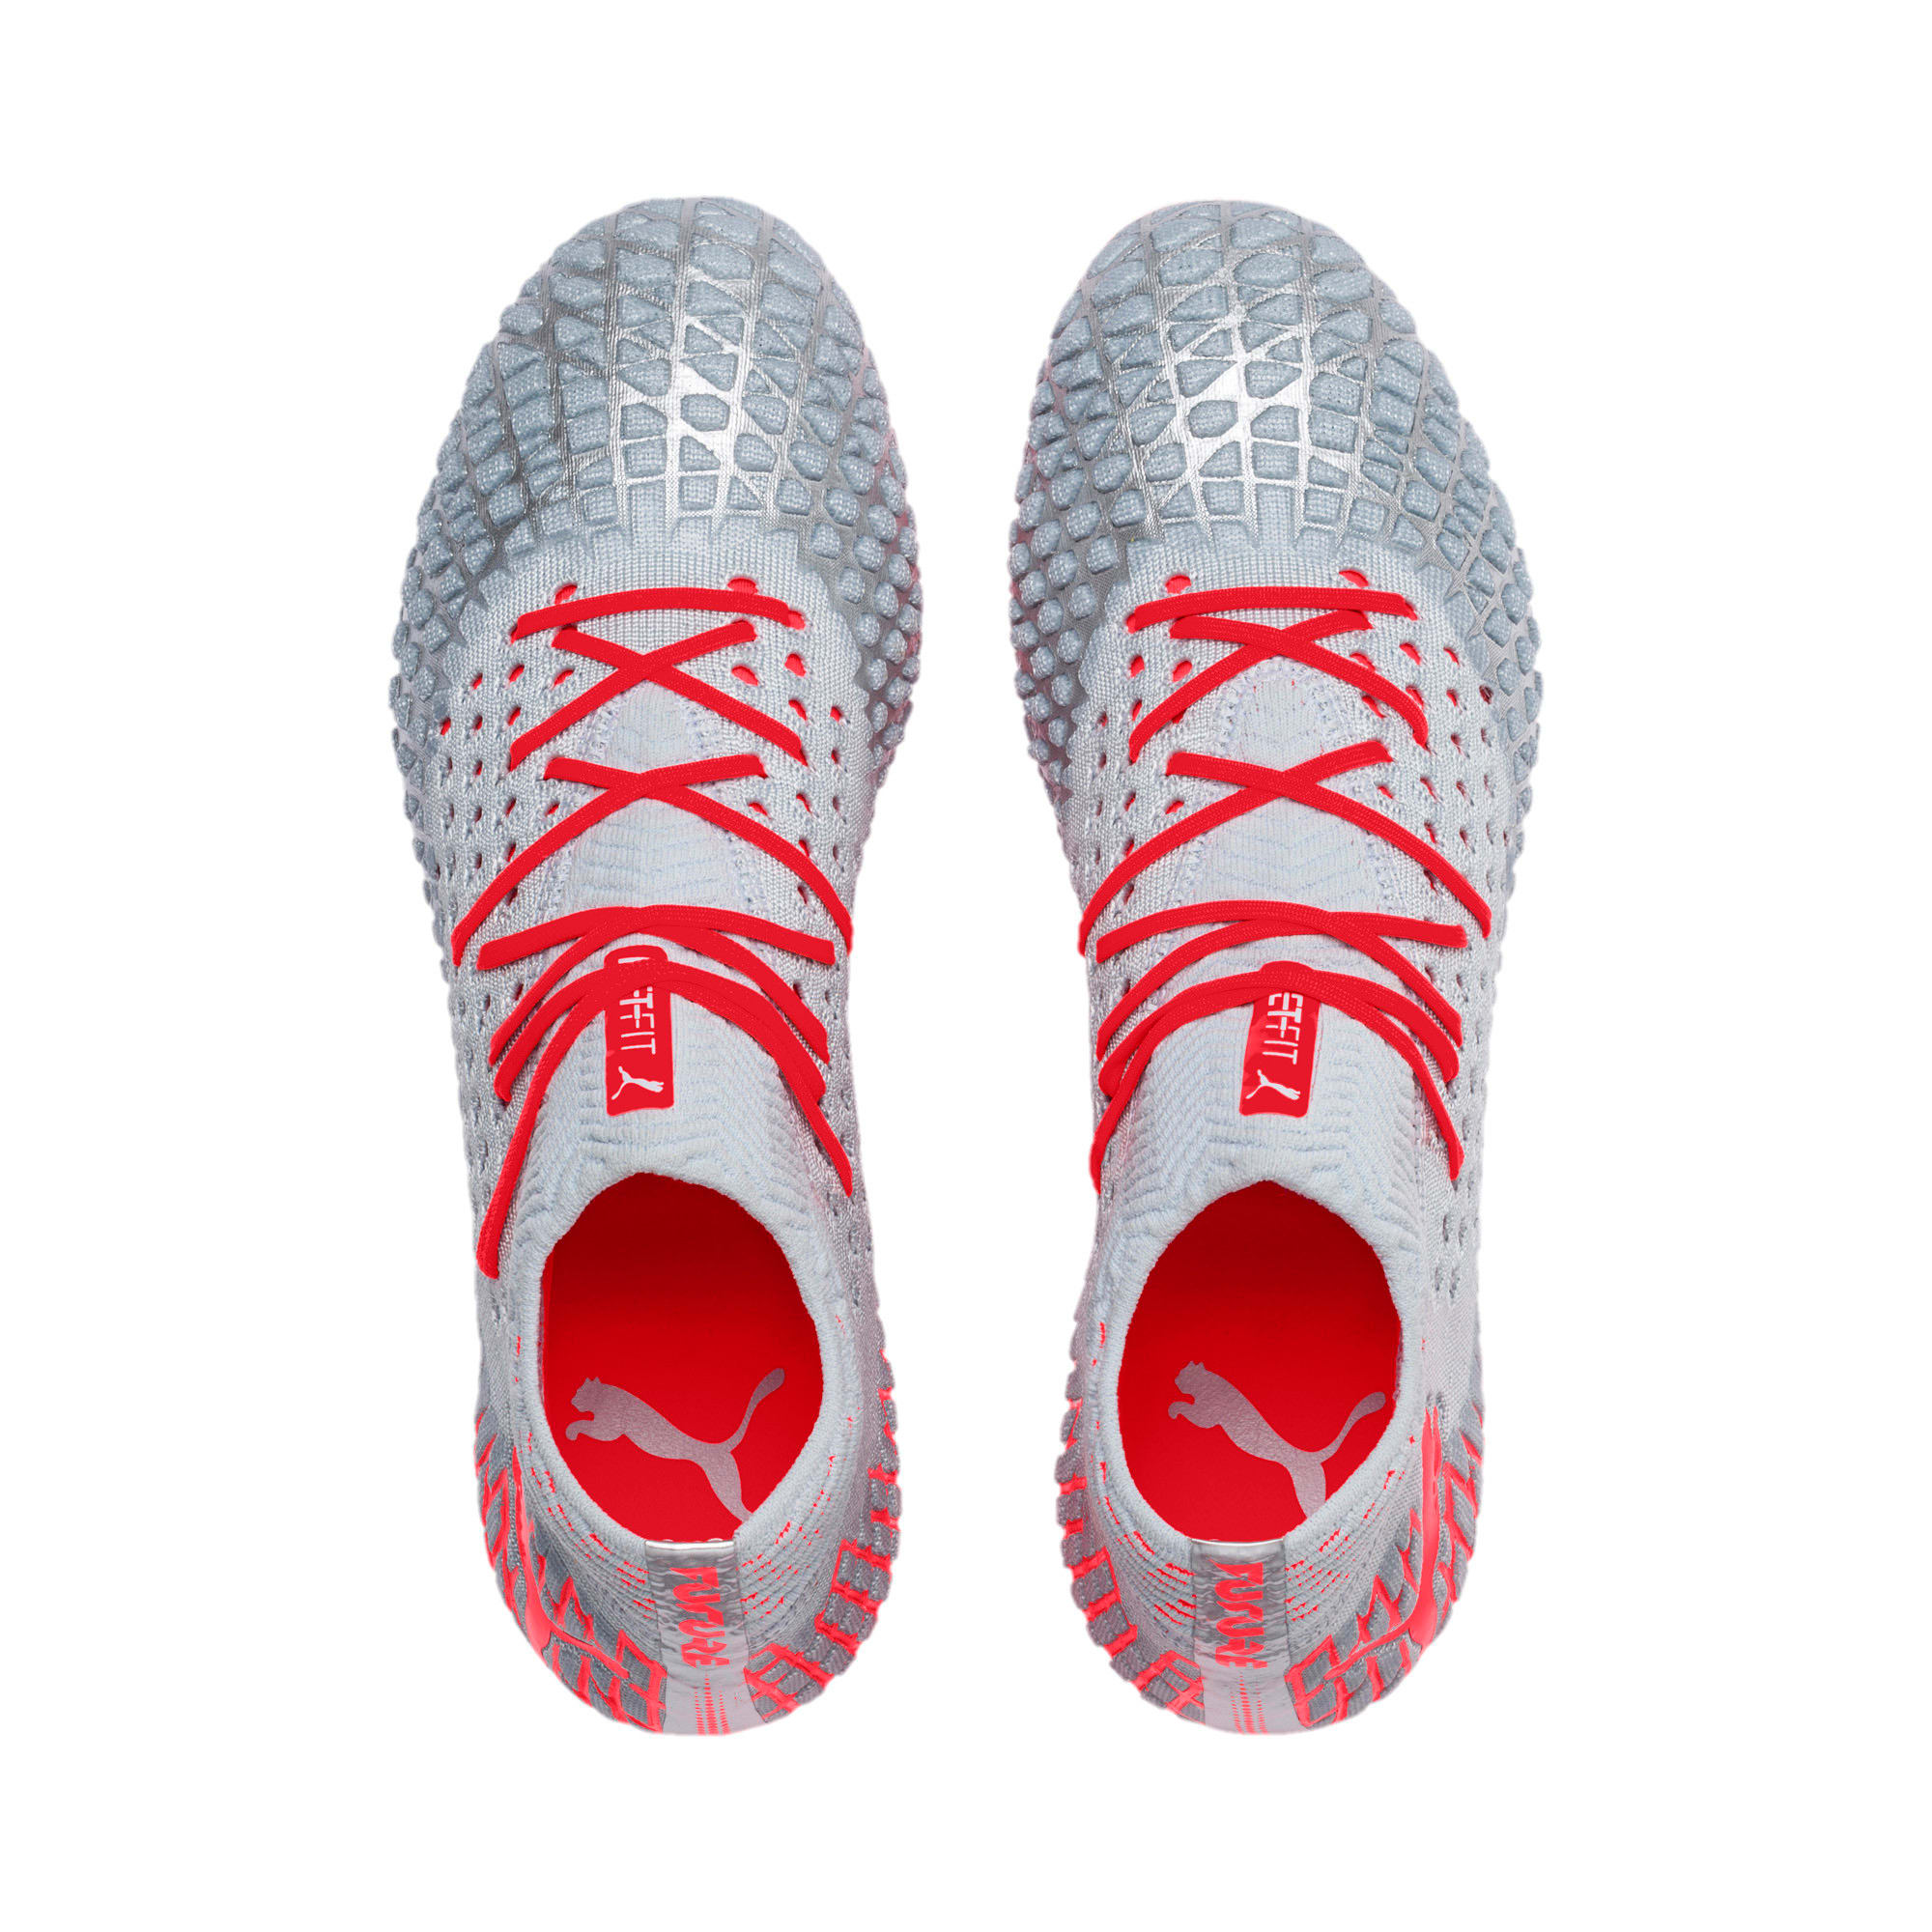 Thumbnail 7 of FUTURE 4.1 NETFIT FG/AG Men's Soccer Cleats, Blue-Nrgy Red-High Risk Red, medium